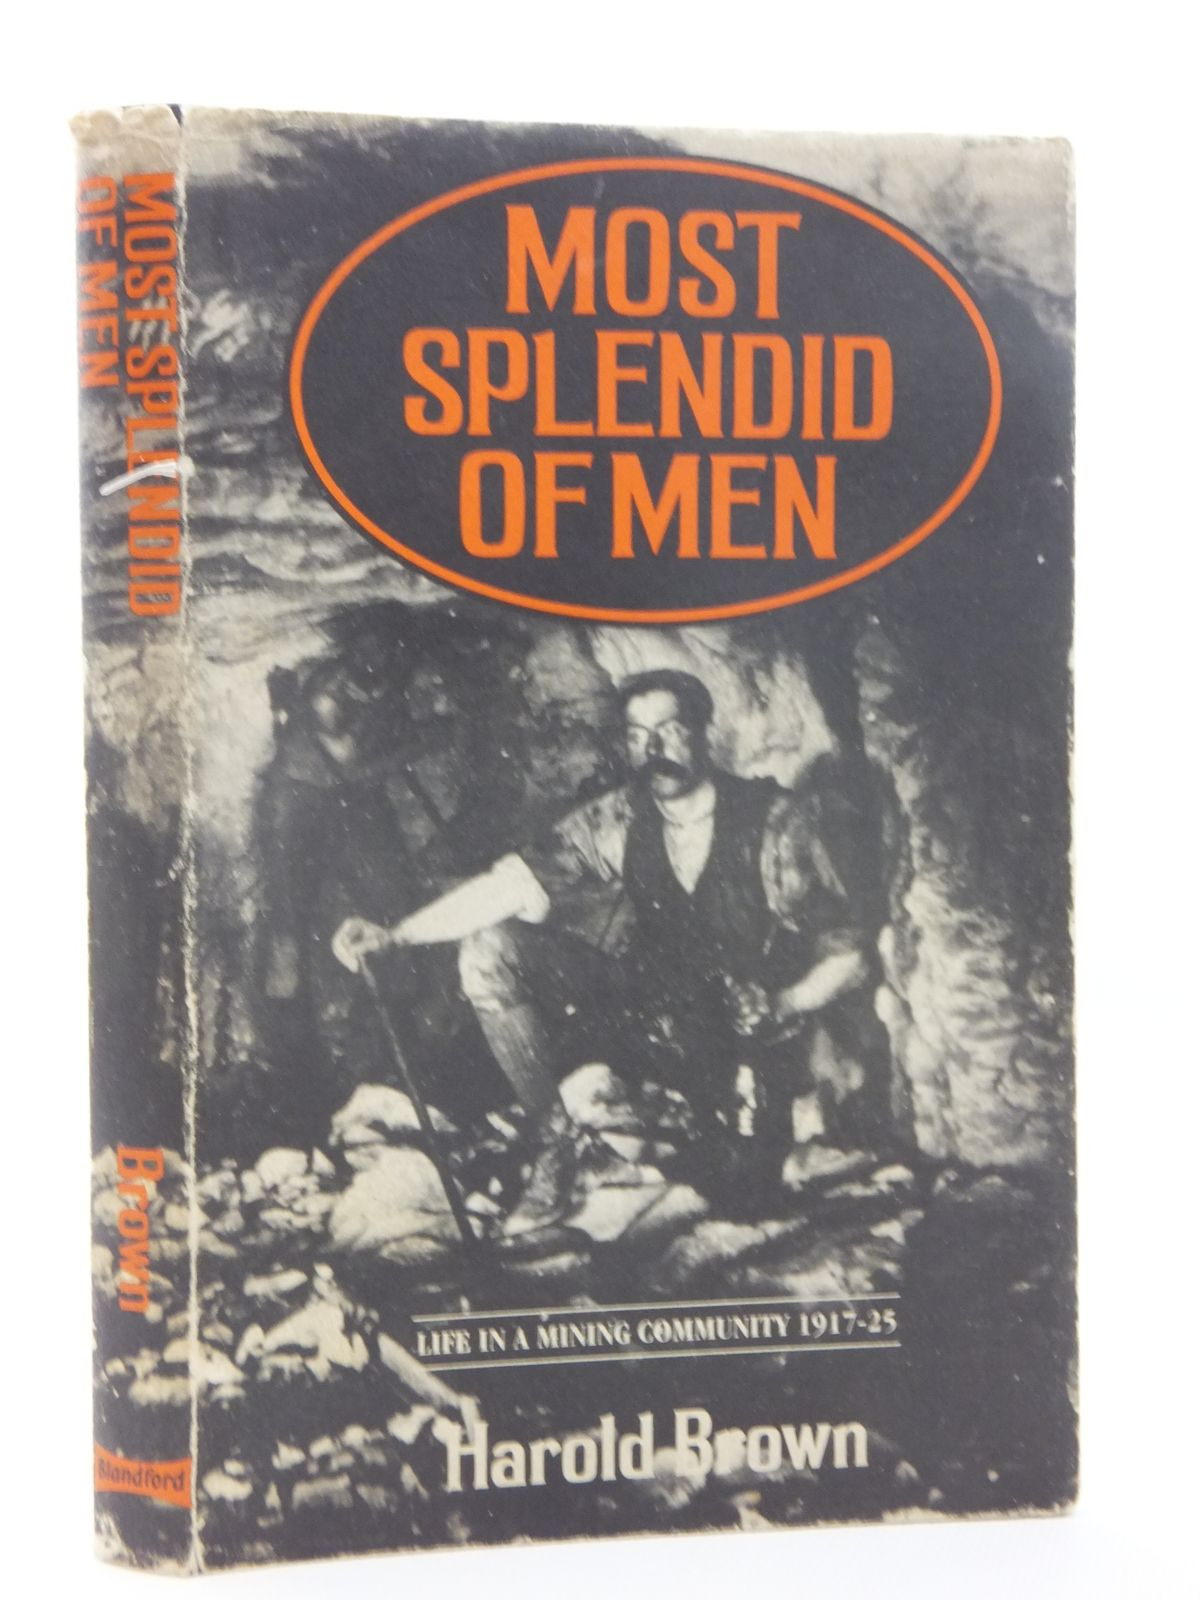 Photo of MOST SPLENDID OF MEN LIFE IN A MINING COMMUNITY 1917-25 written by Brown, Harold published by Blandford Press (STOCK CODE: 1815442)  for sale by Stella & Rose's Books